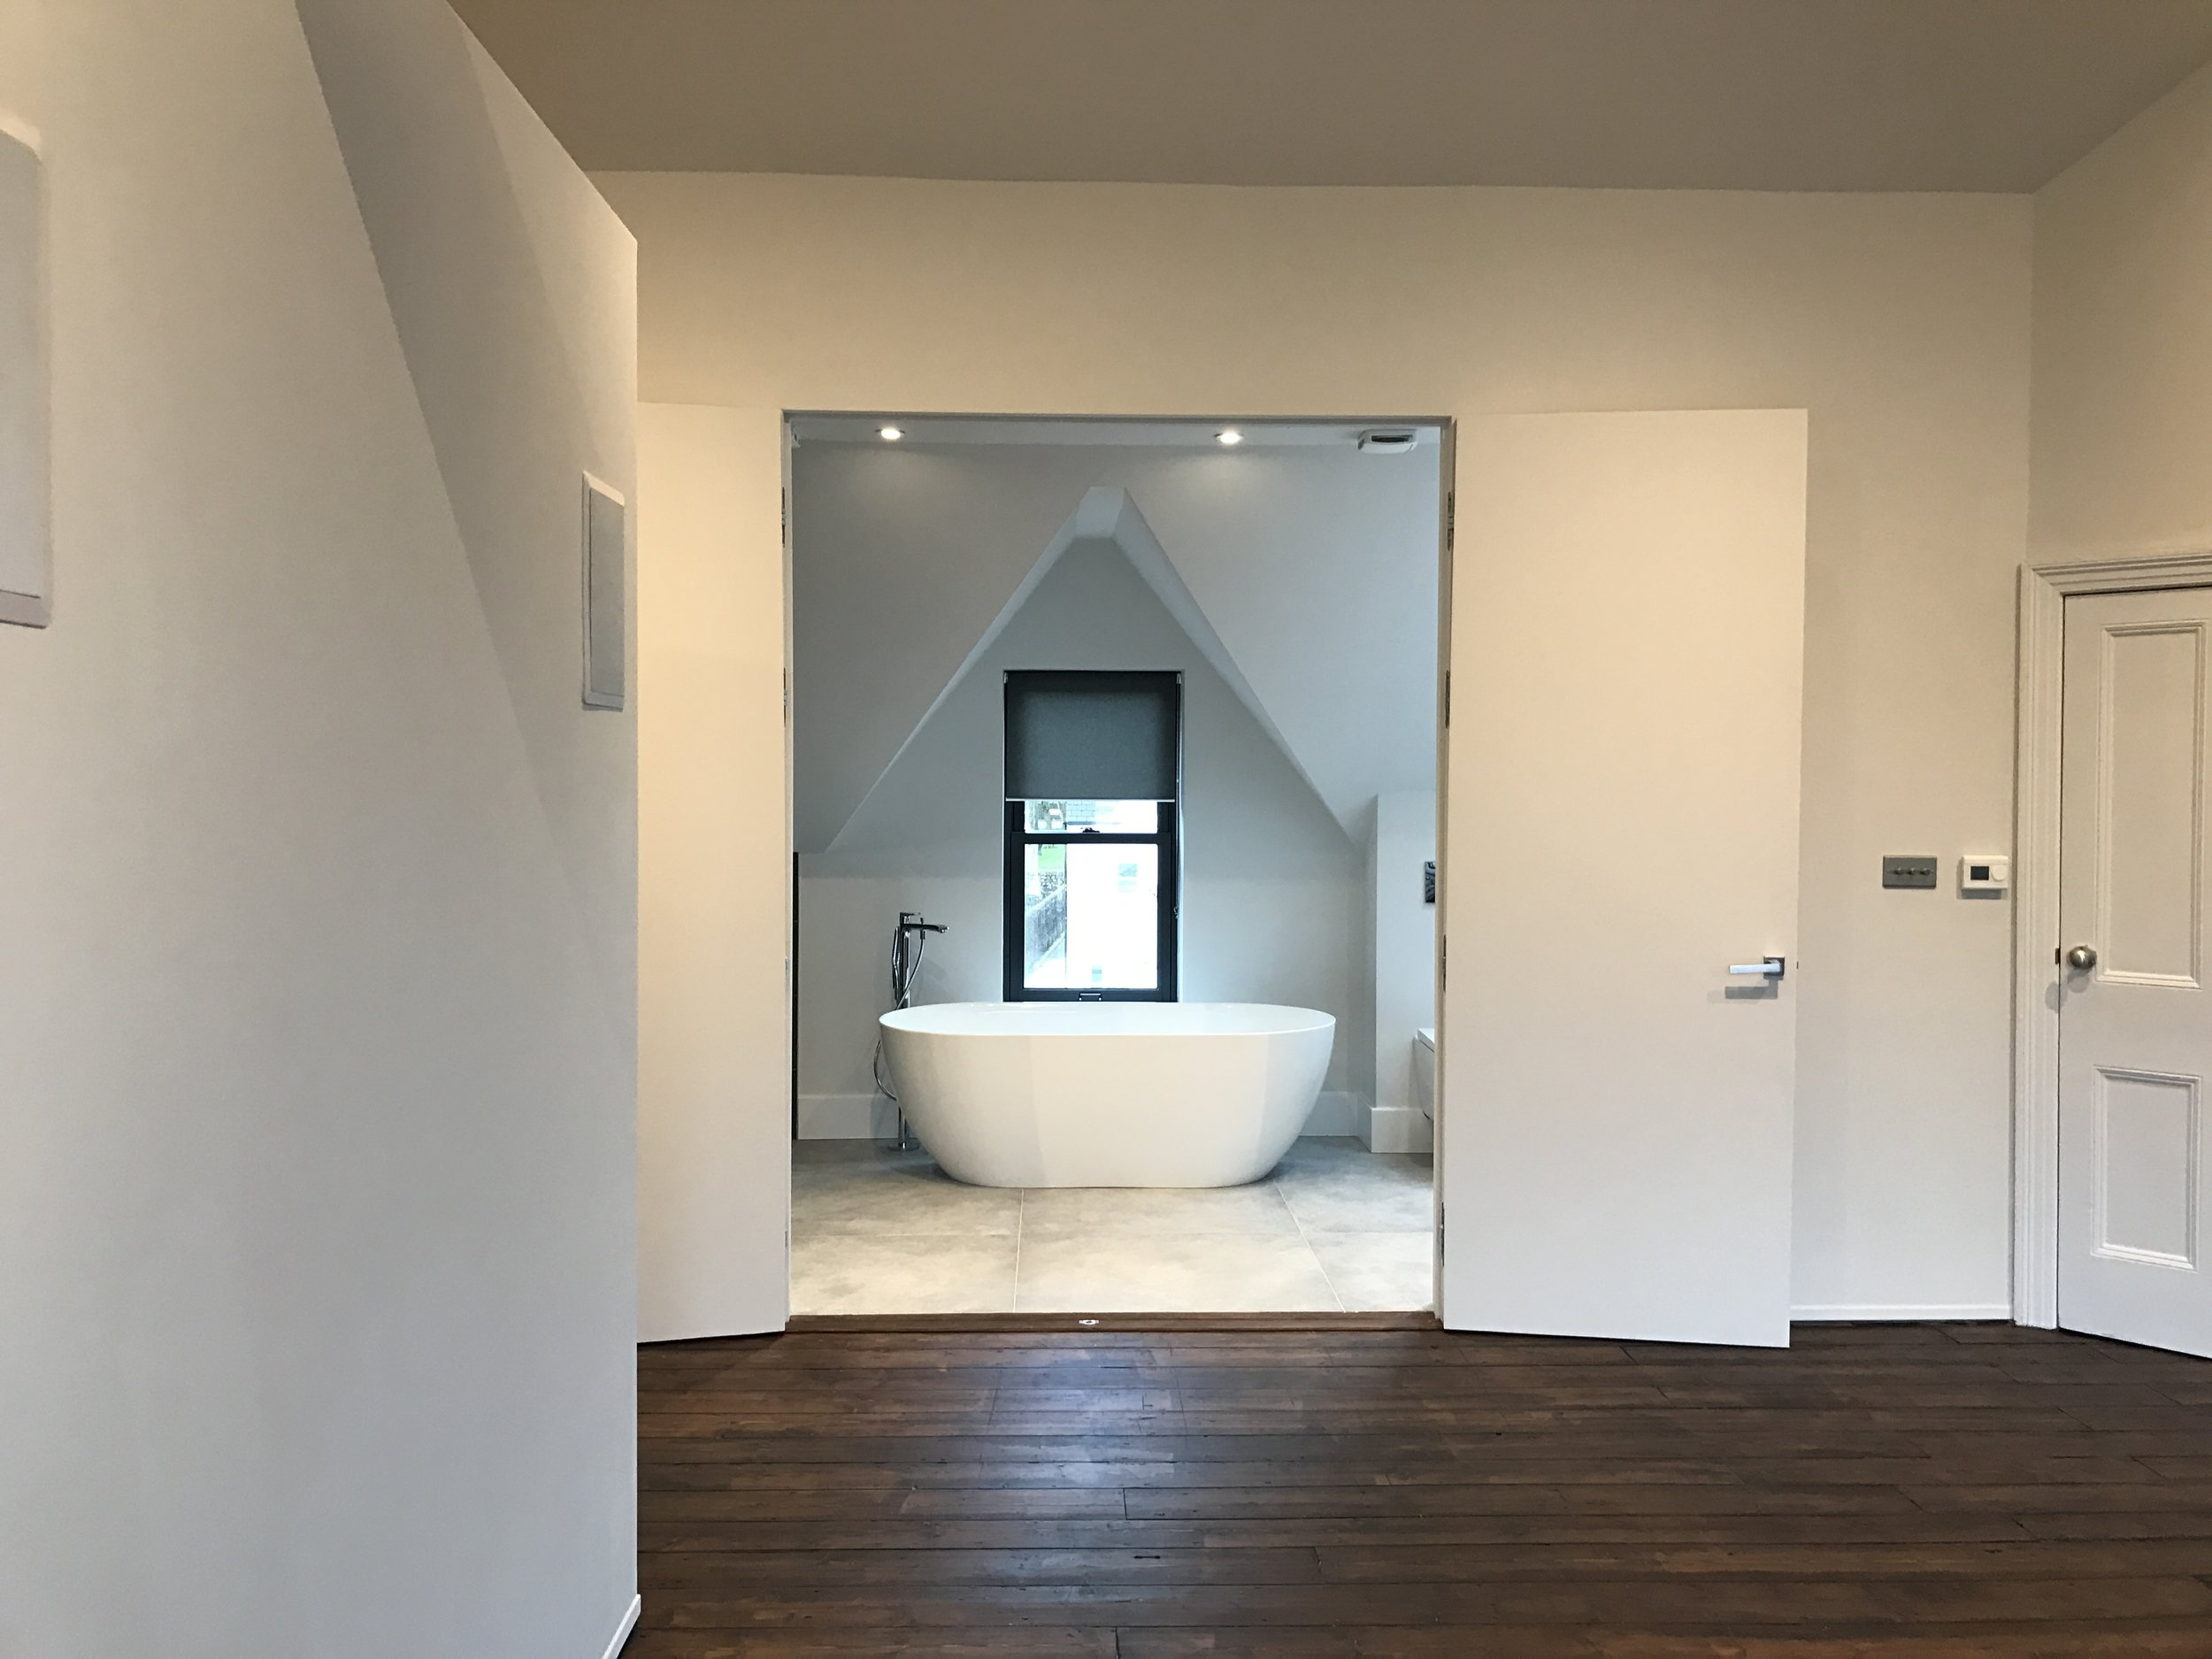 The loft space has been completely opened up to form the Master Bedroom, with 180 degree opening full height blank doors, into the En-suite Bathroom / Steam Room.